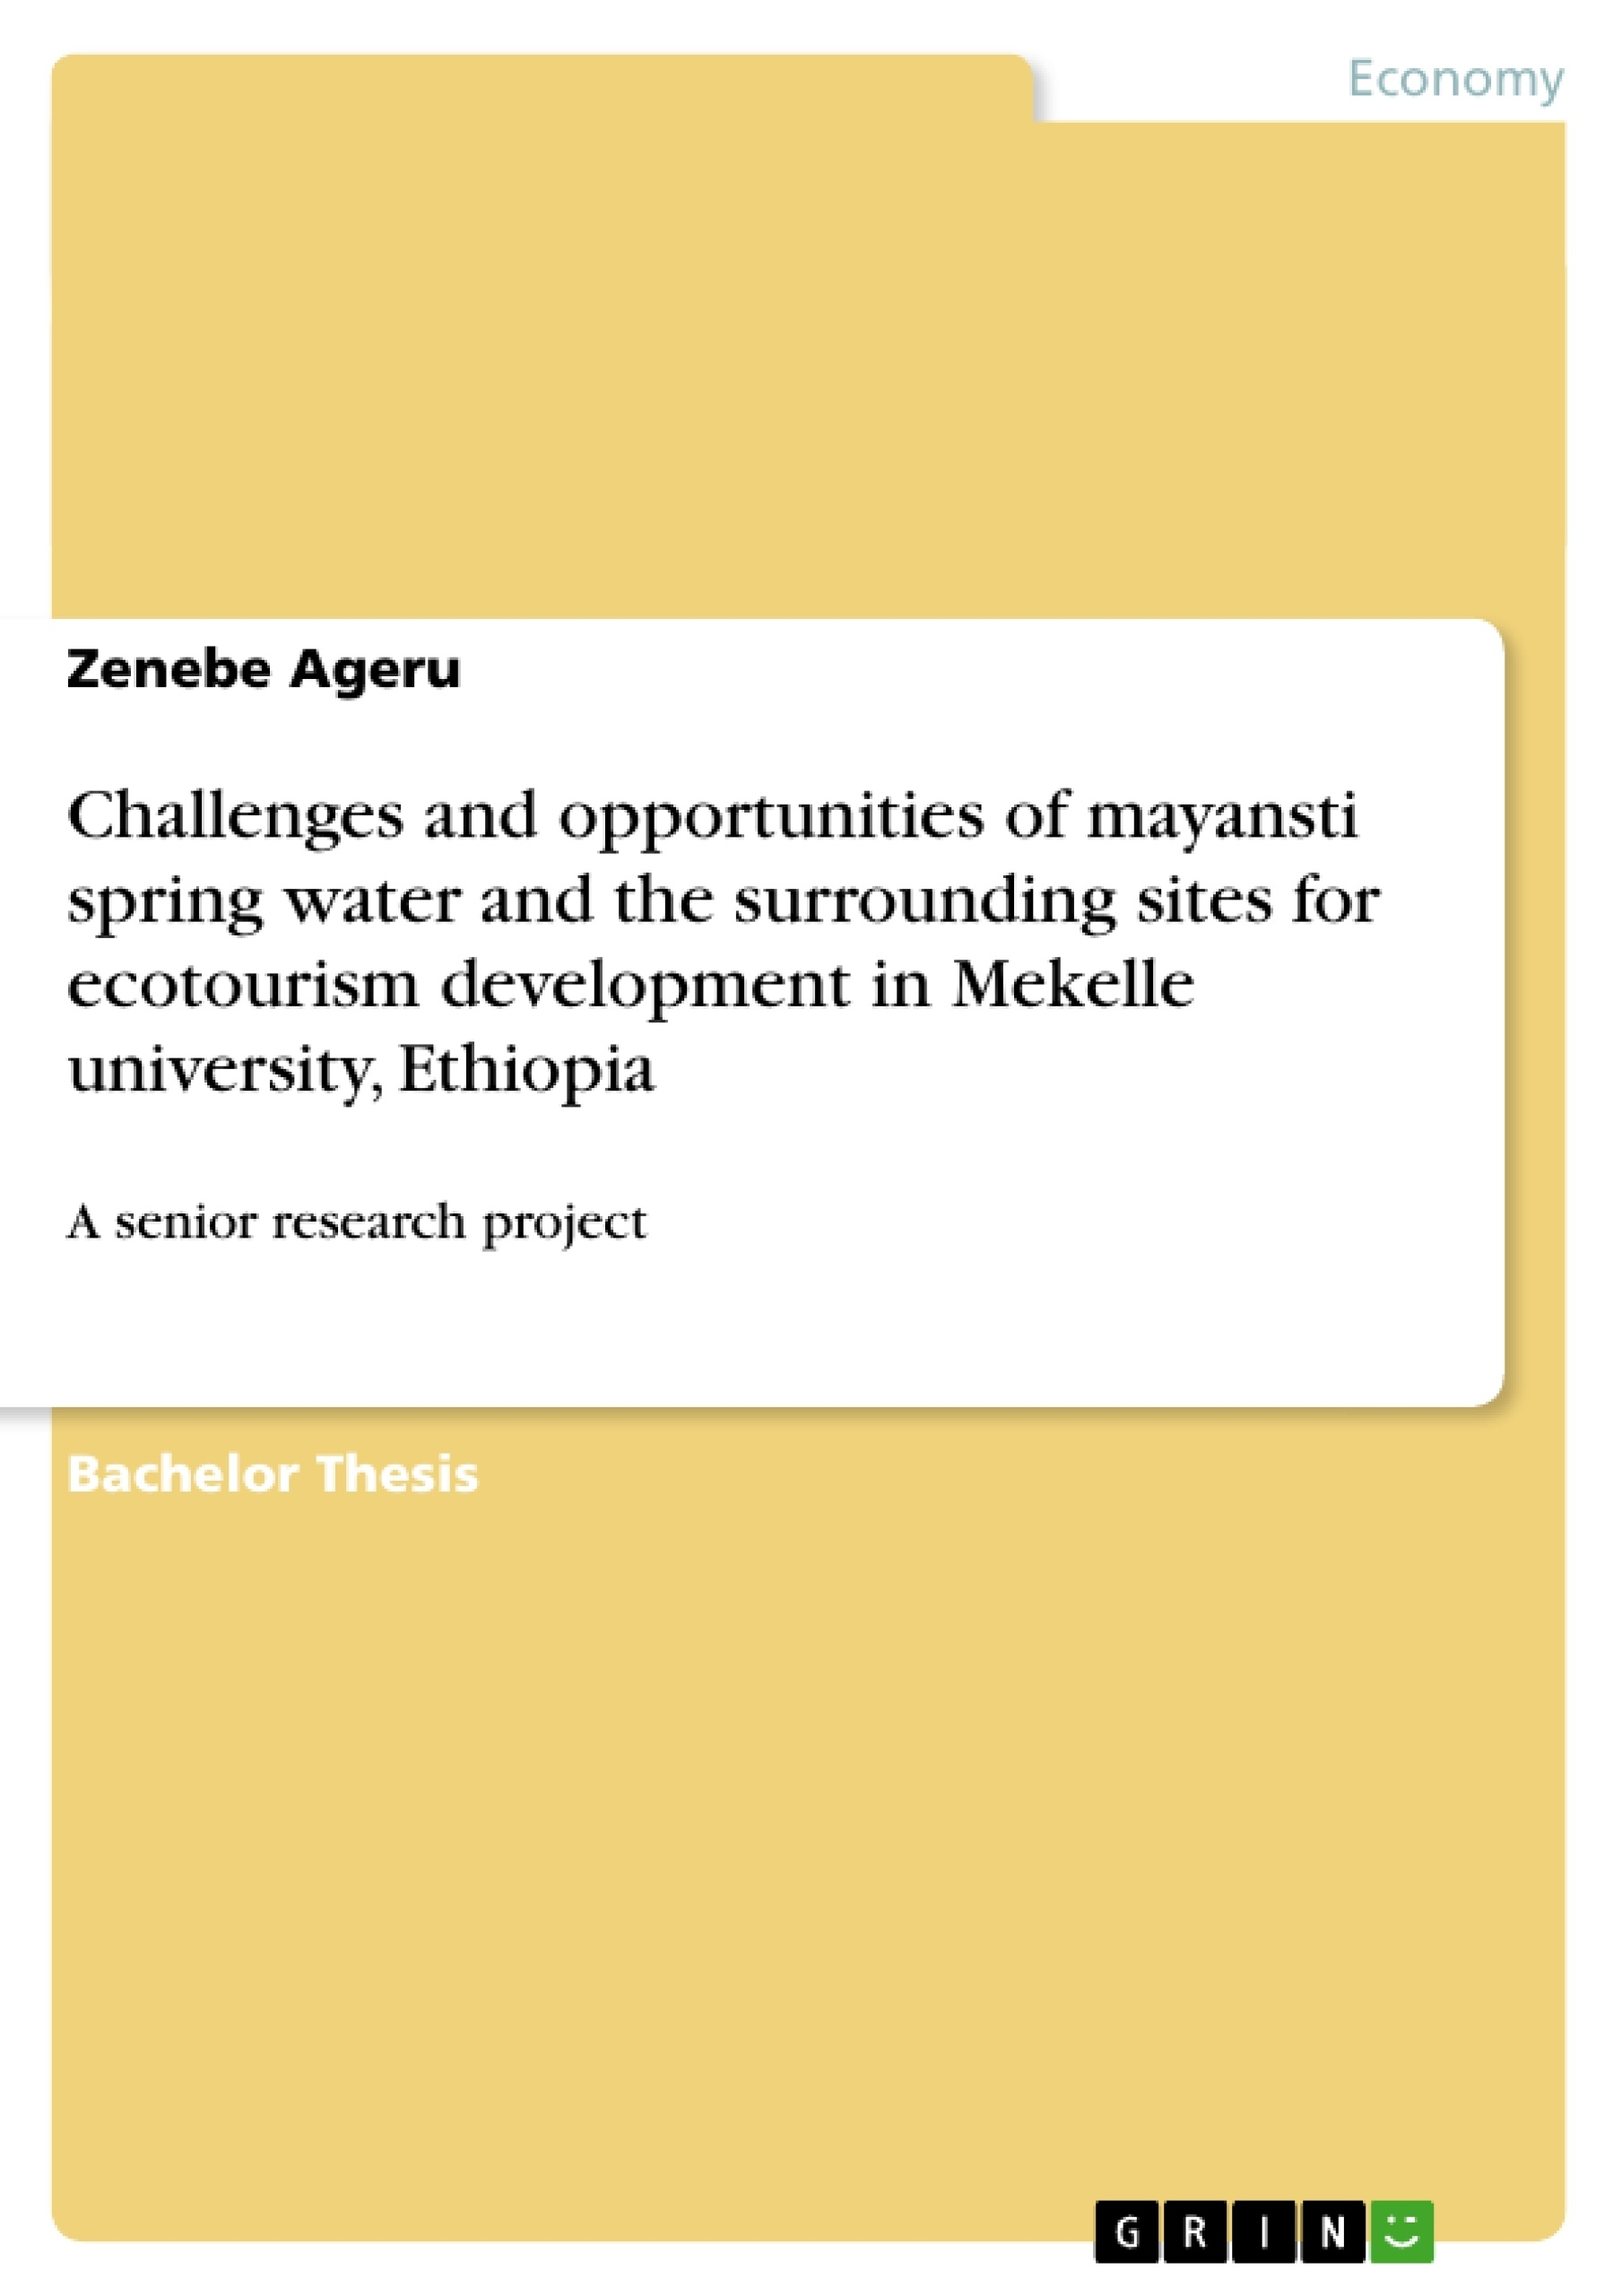 Title: Challenges and opportunities of mayansti spring water and the surrounding sites for ecotourism development  in Mekelle university, Ethiopia